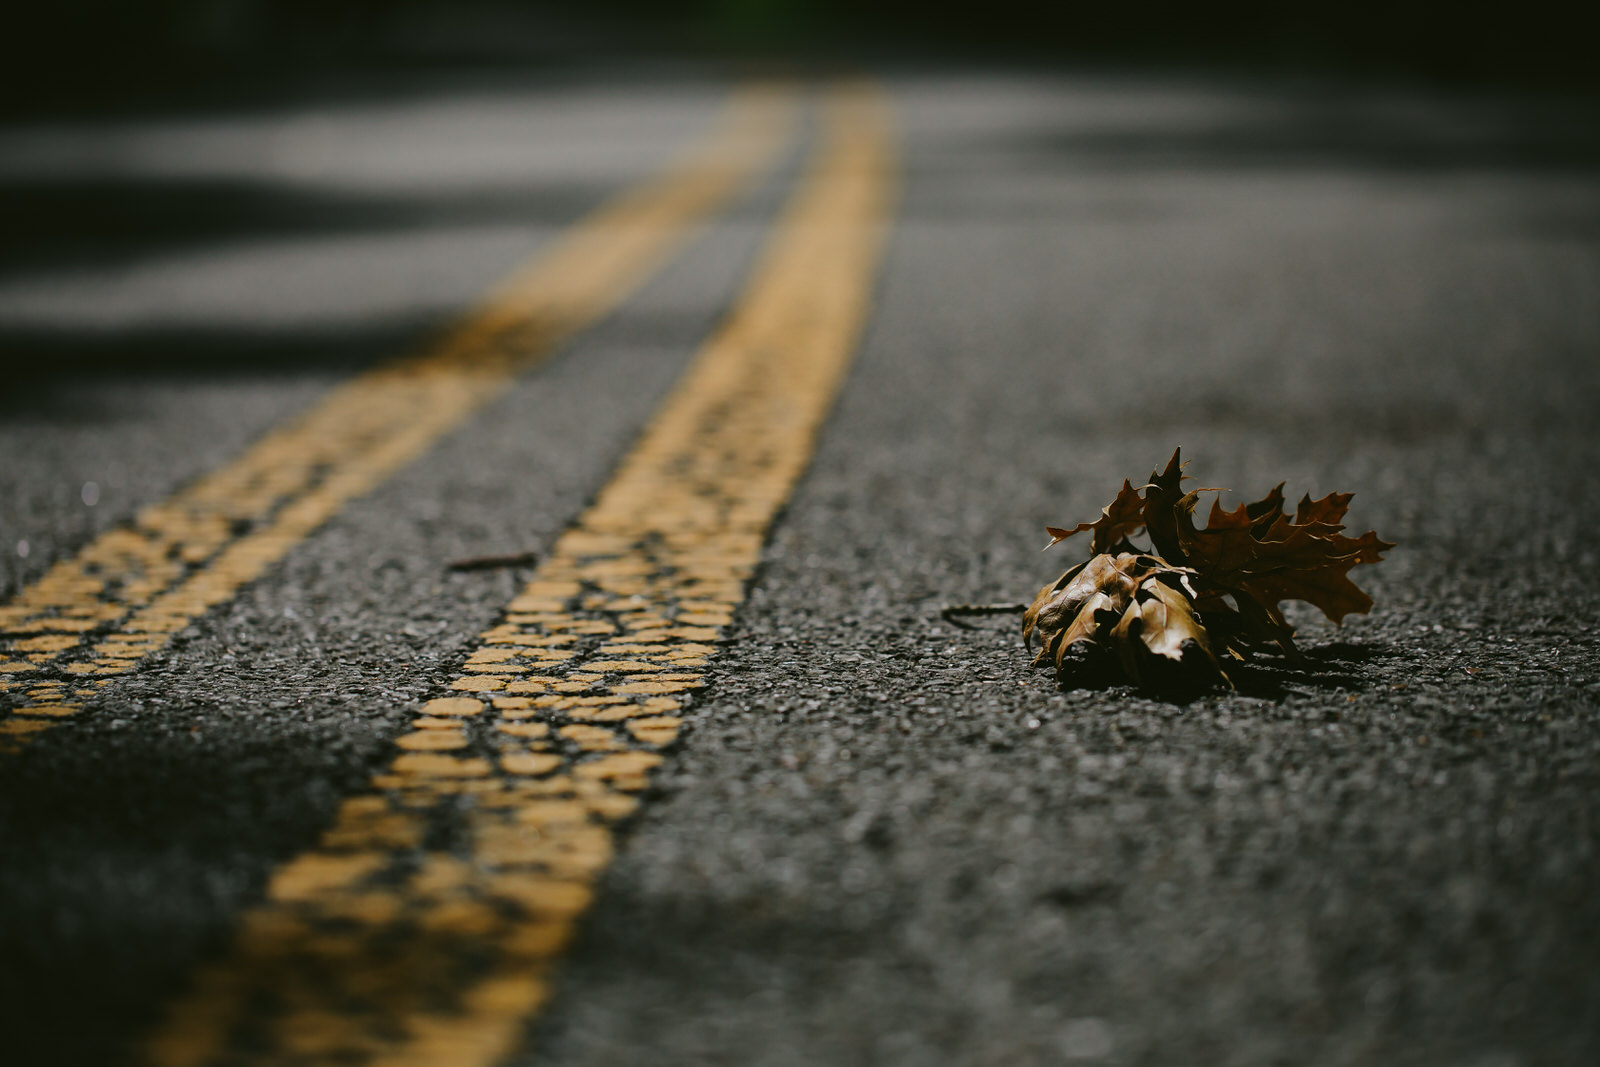 leaf-nature-hiking-tennessee-photography-road.jpg